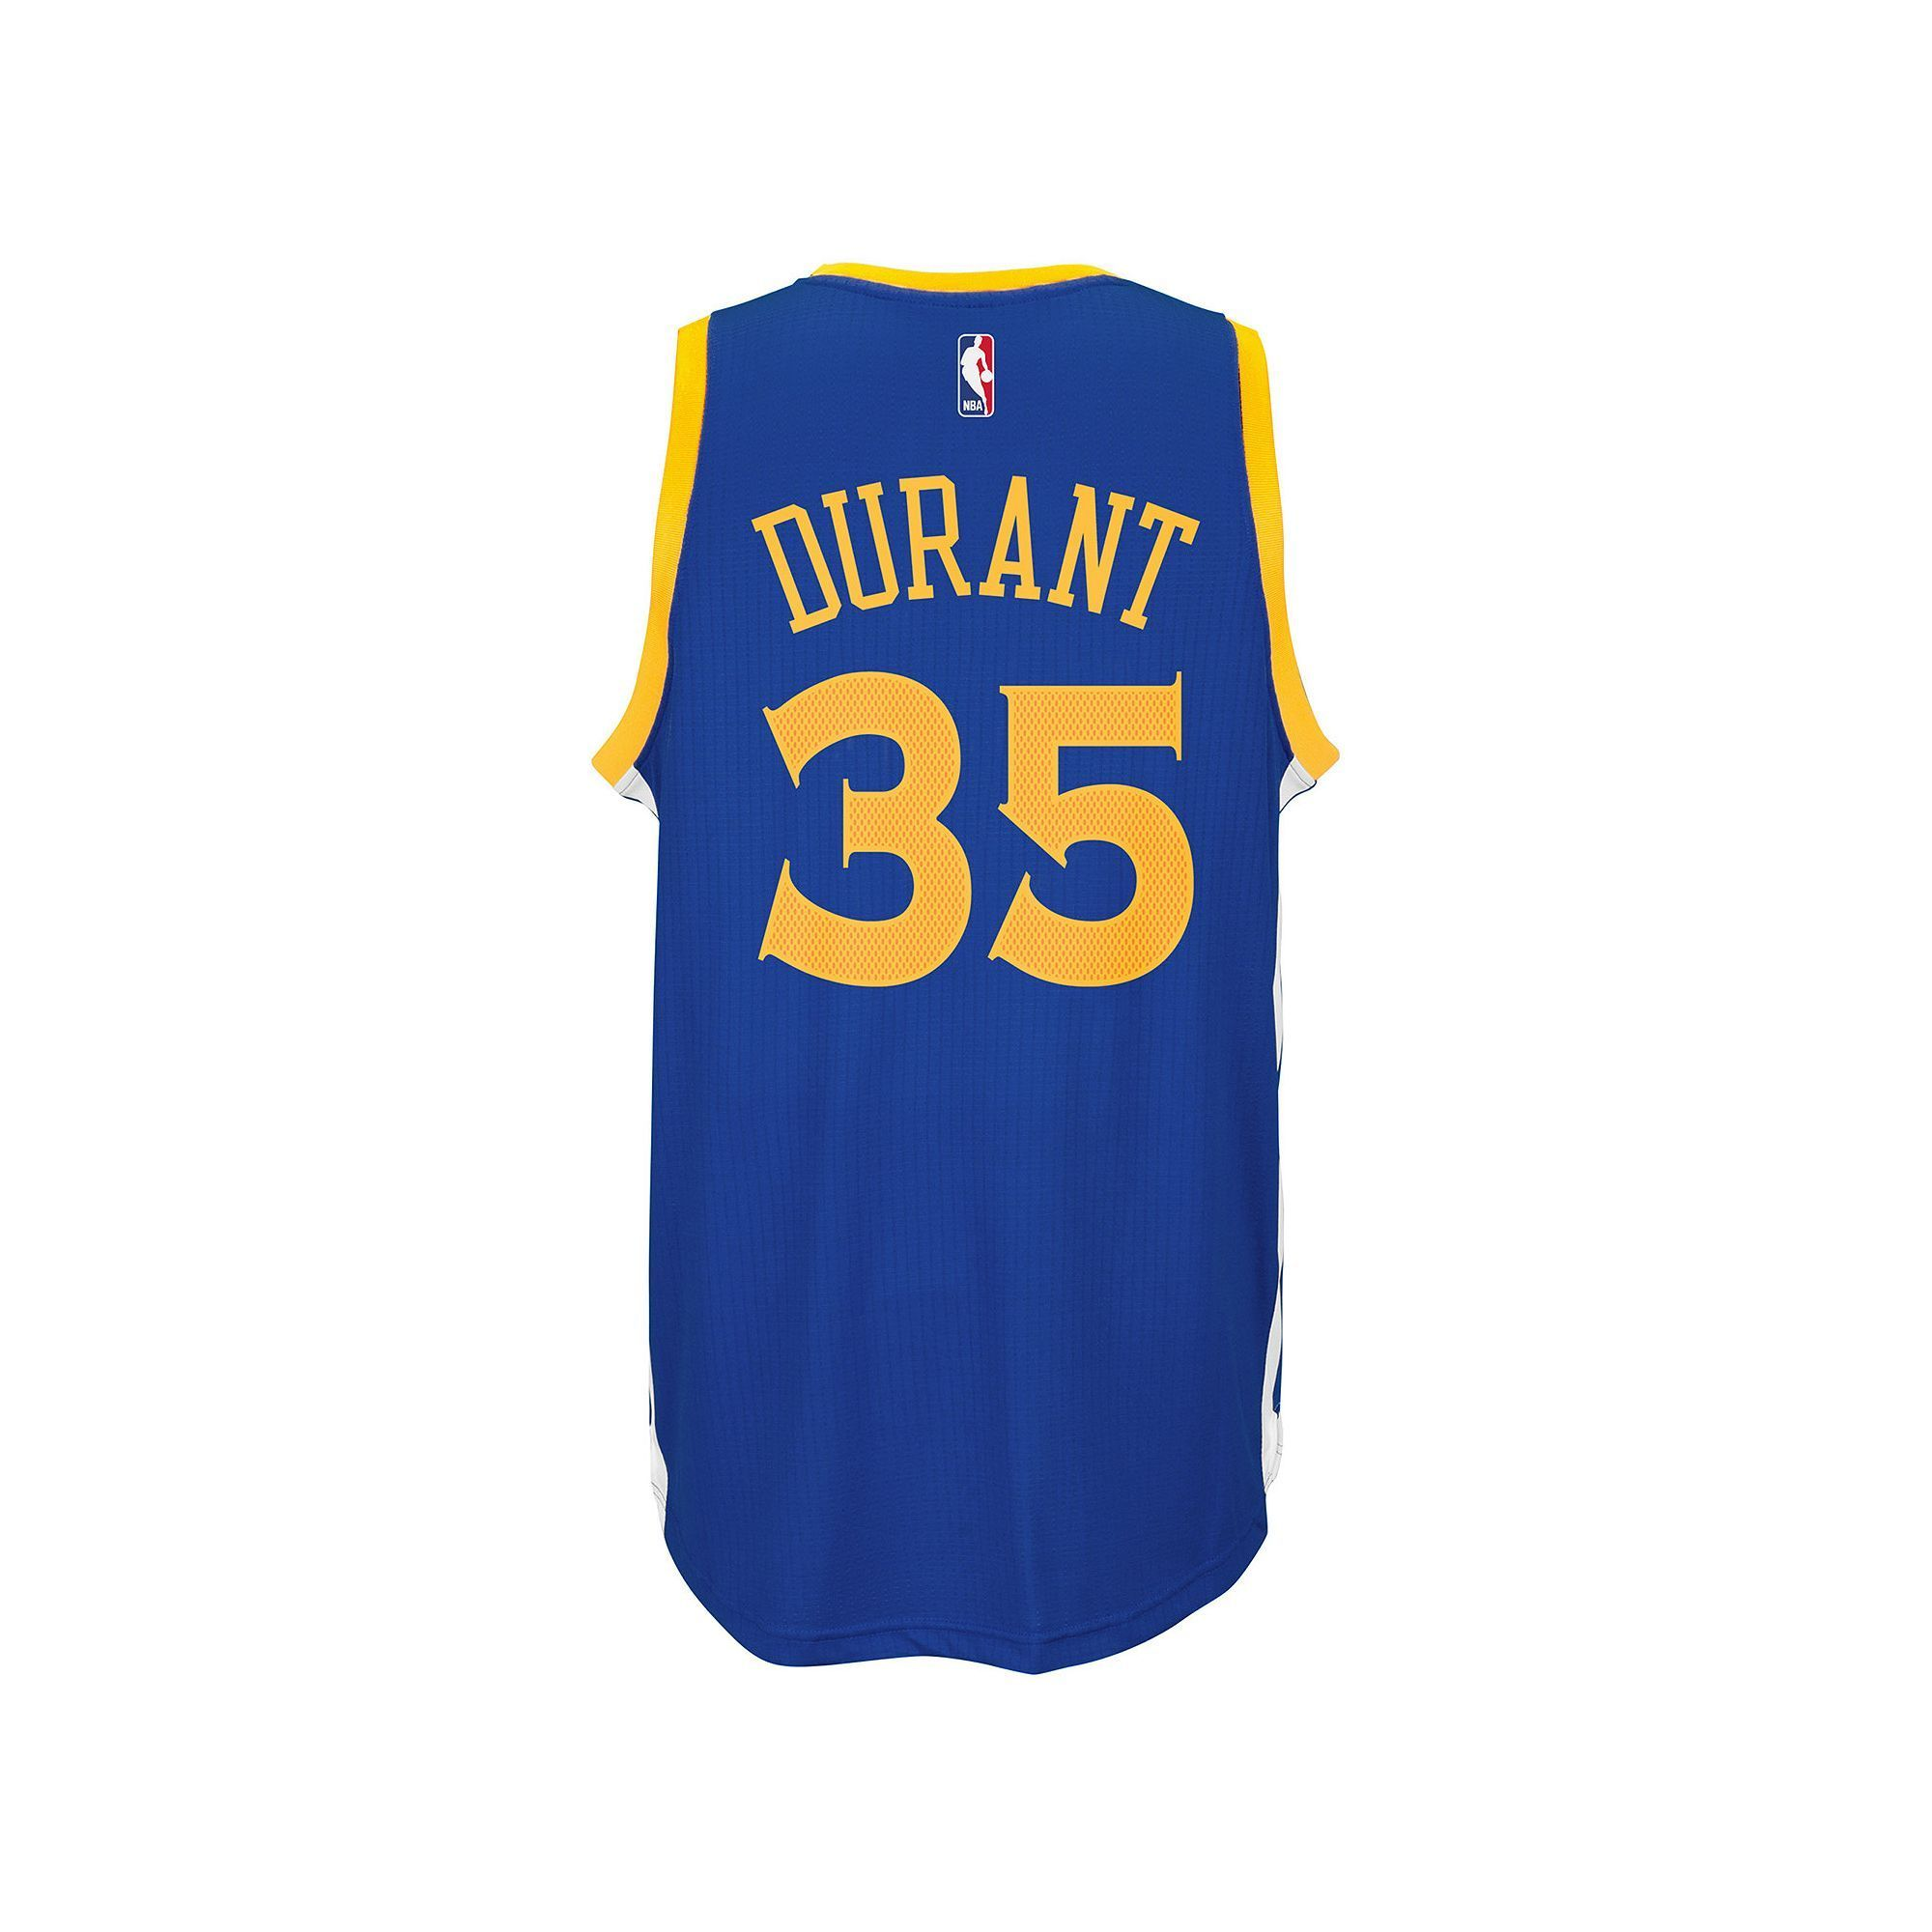 697c66d9e20 Men s adidas Golden State Warriors Kevin Durant NBA Replica Jersey ...